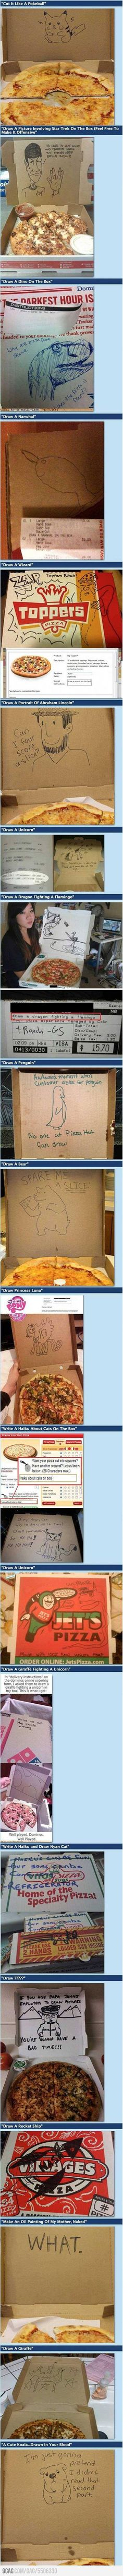 Extra requests with pizza orders means awesome drawings done by witty employees.